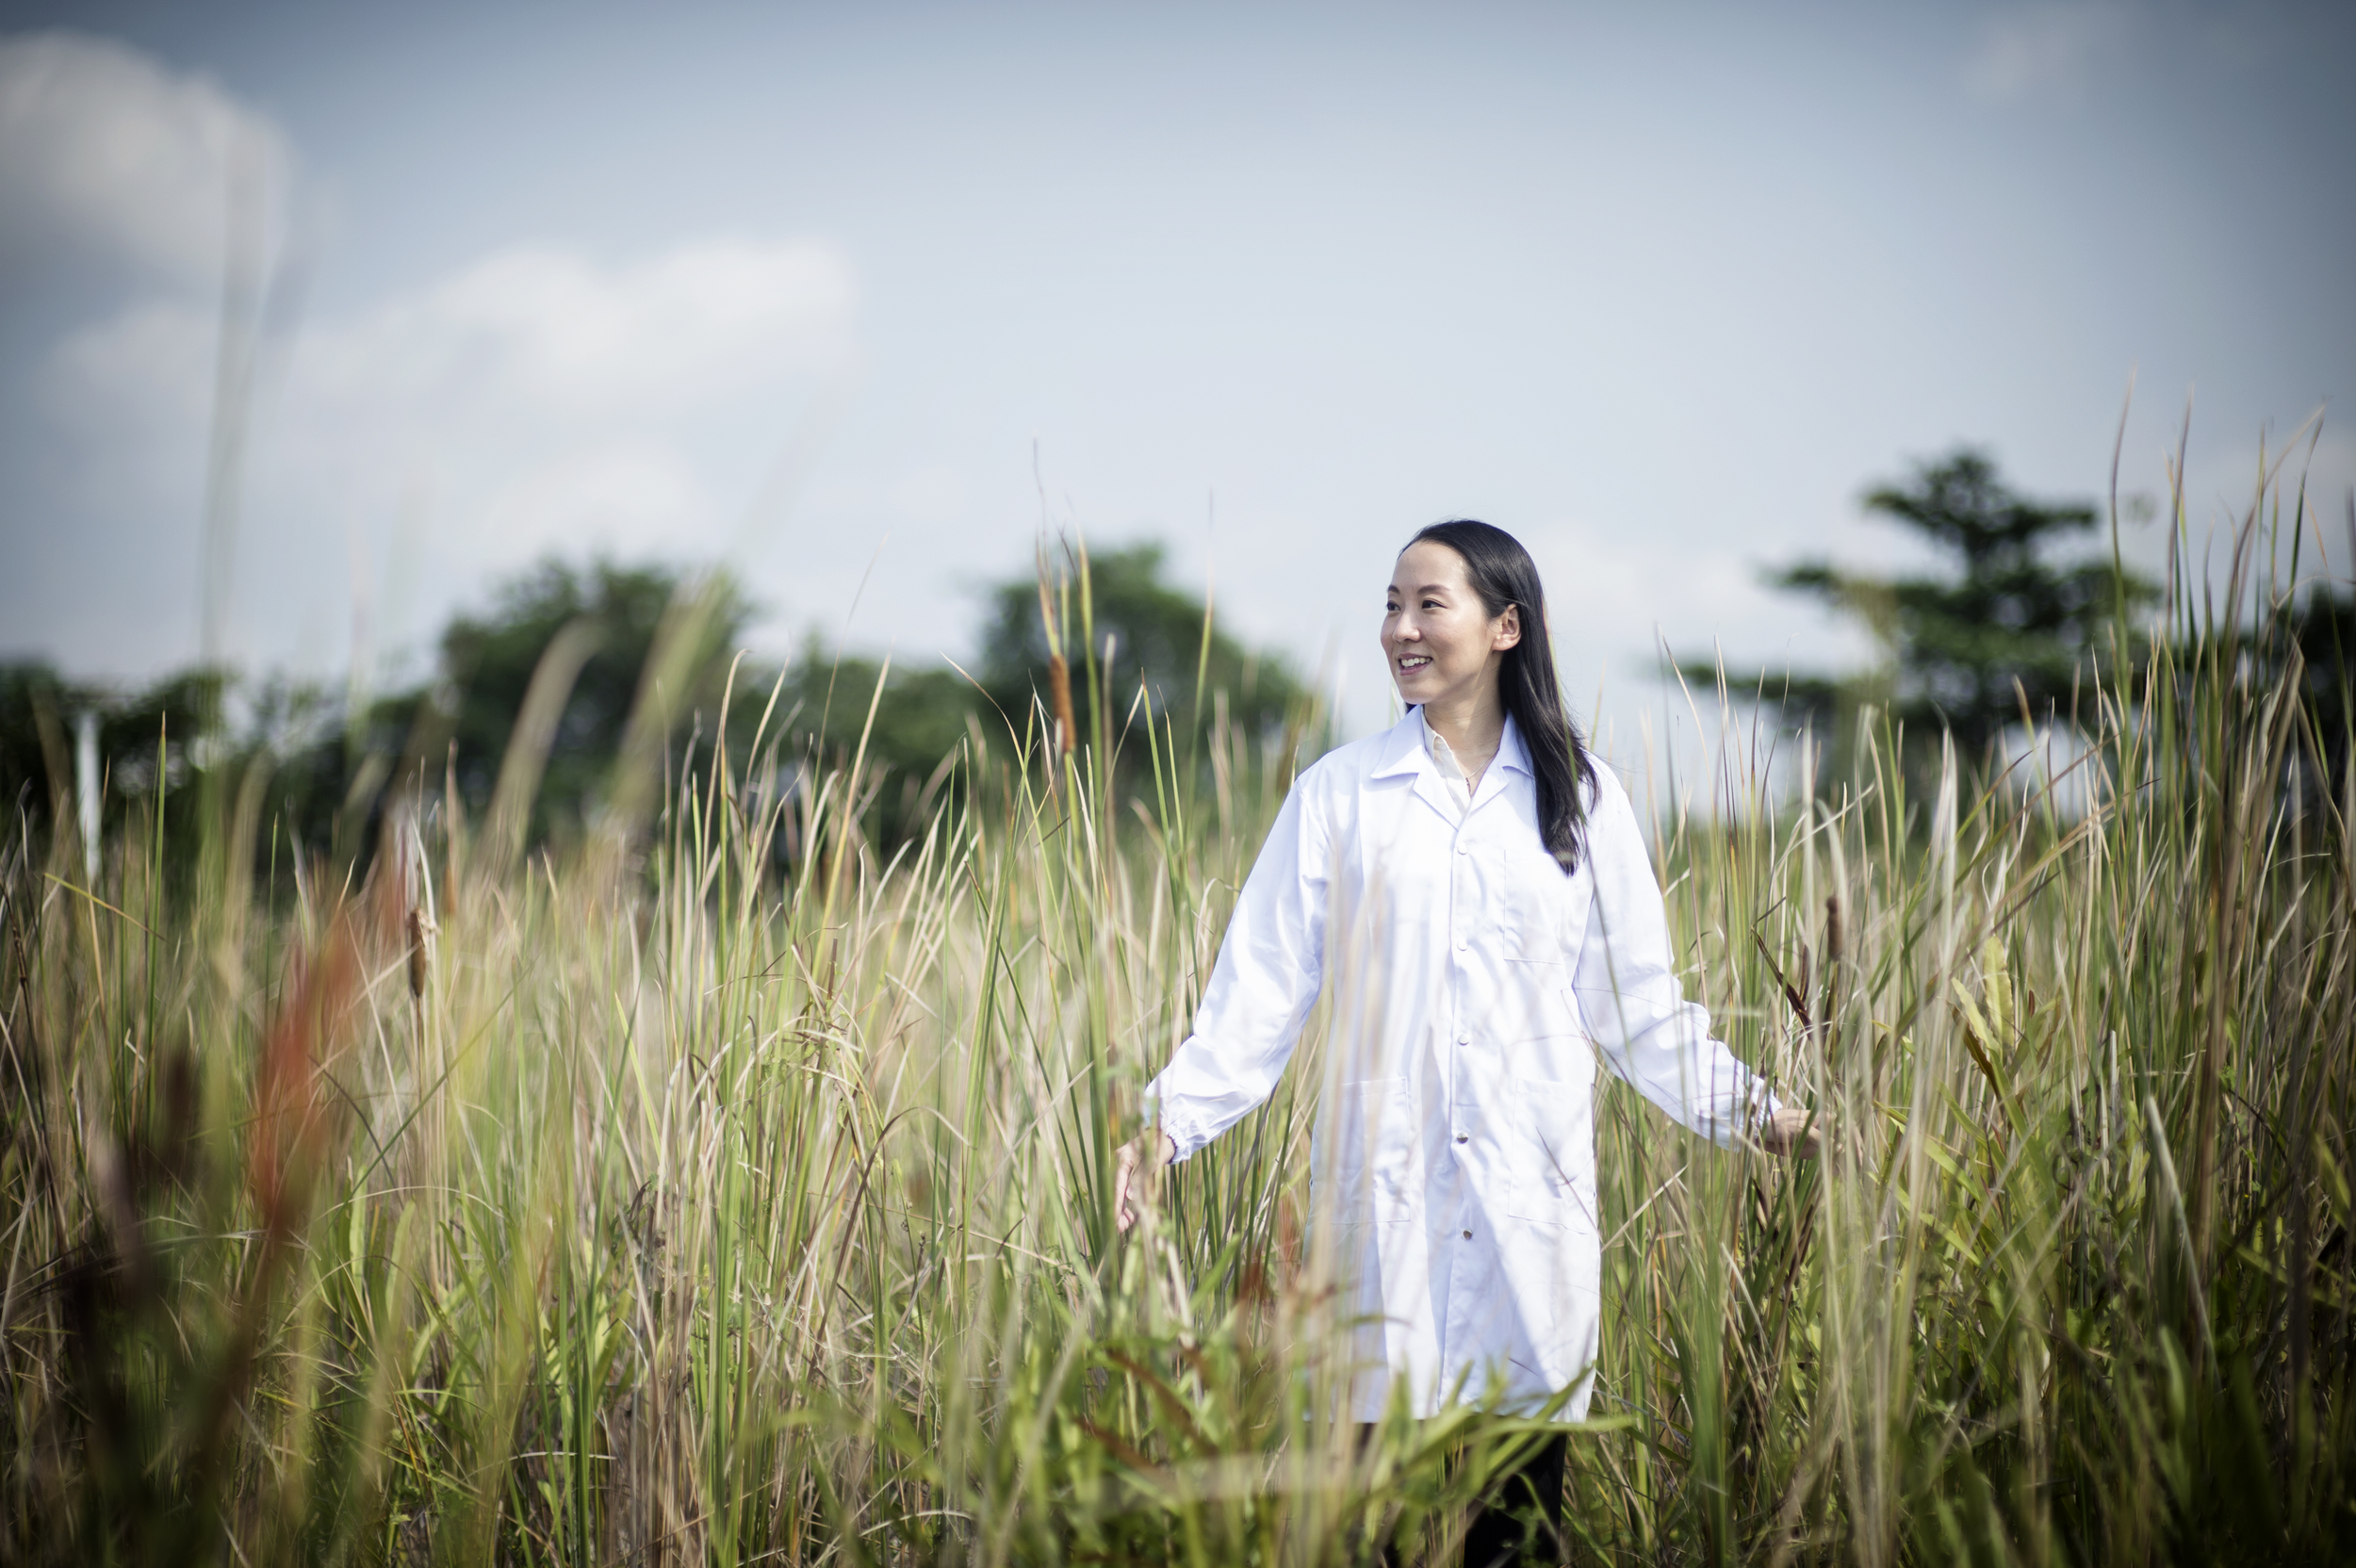 Biologist Dr Juliana Chan has scored scientific breakthroughs with her nanoparticle research.